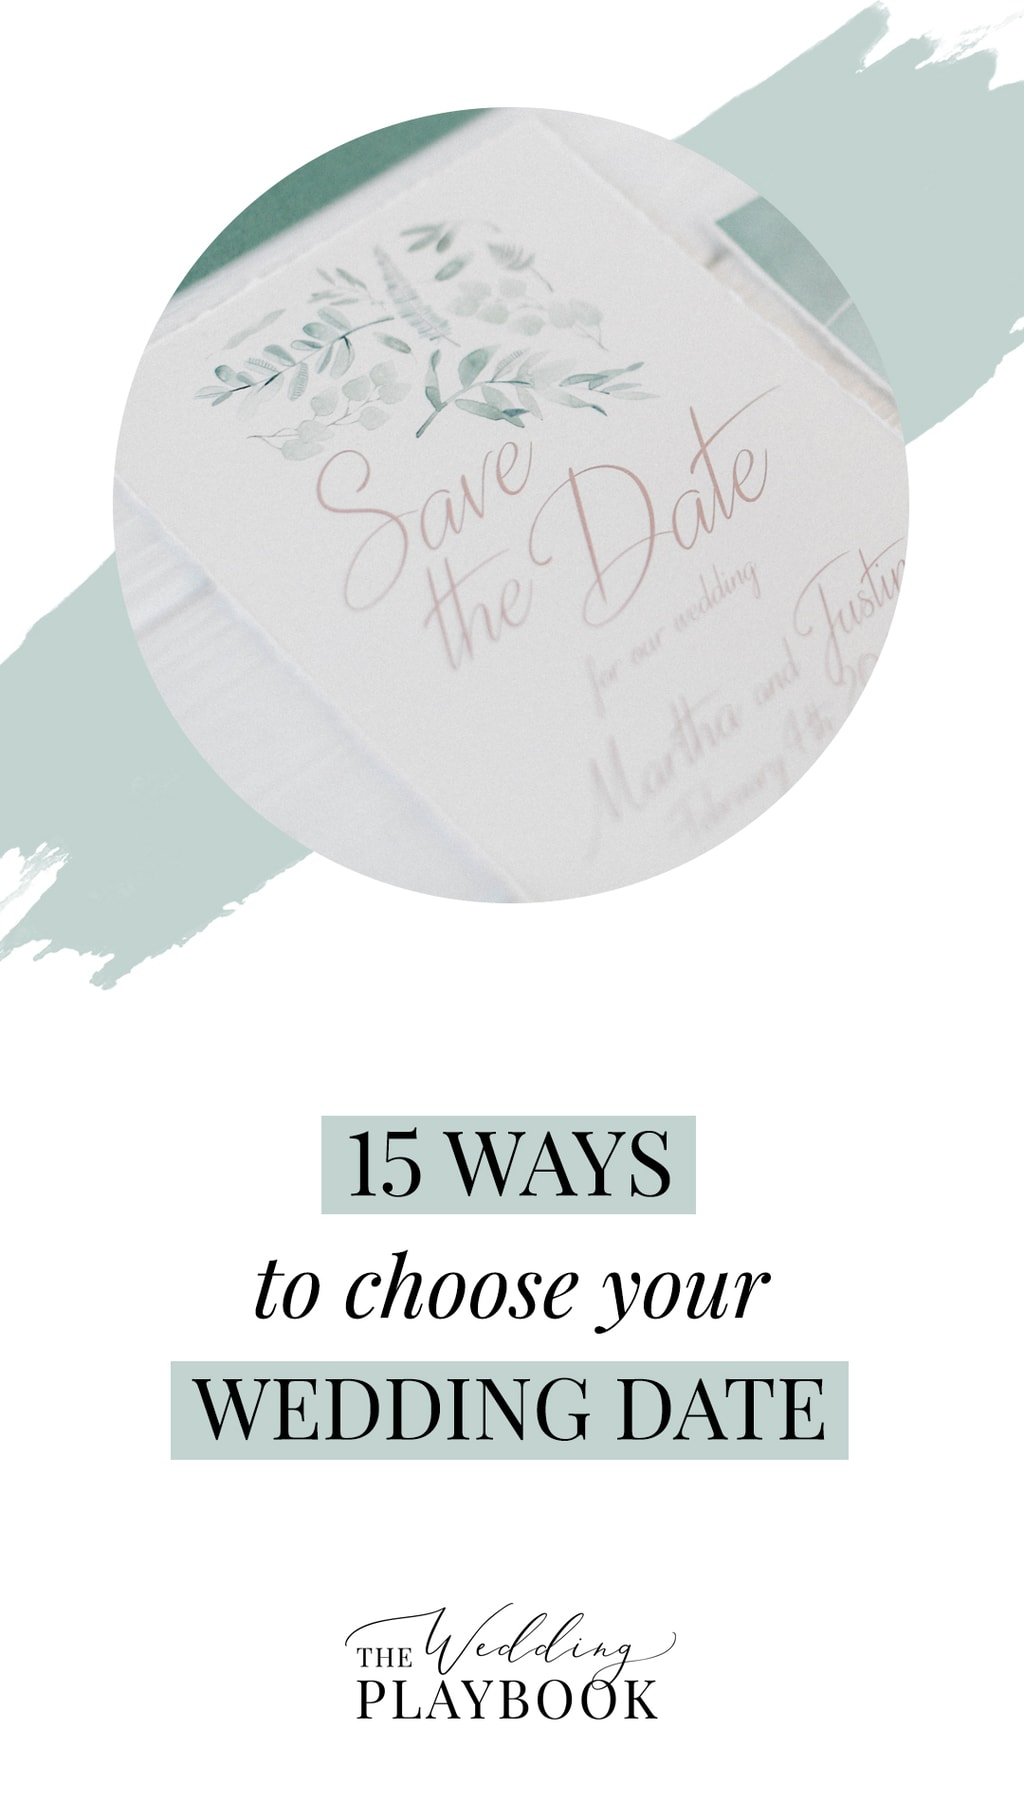 15 Ways to Choose Your Wedding Date | The Wedding Playbook